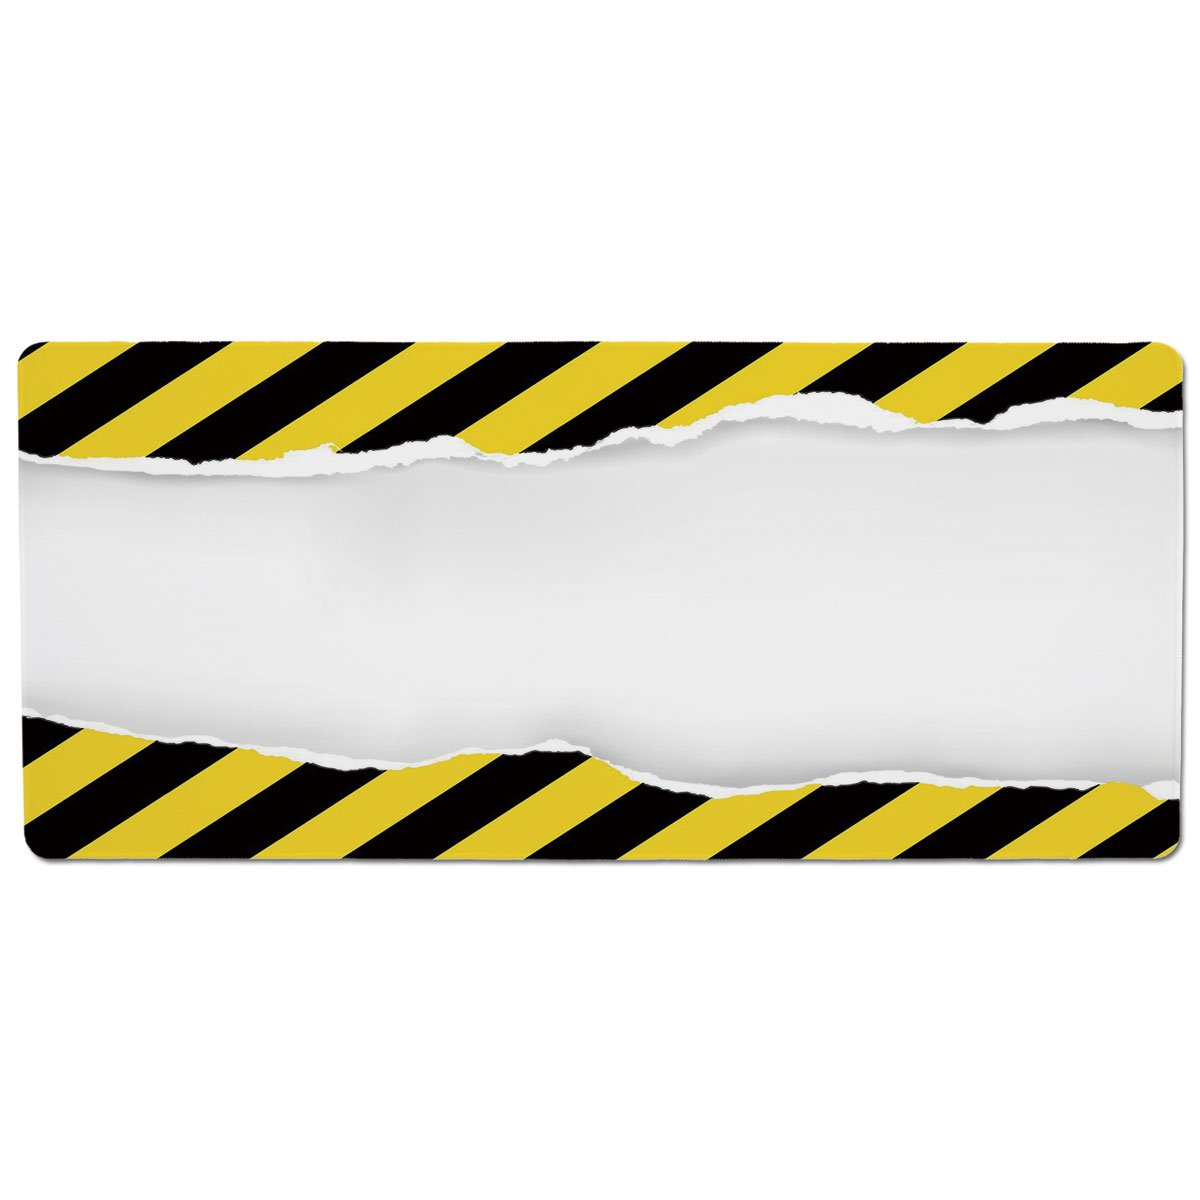 35.4\ iPrint Pet Mat for Food and Water,Construction,Ripped Paper with Construction Sign Safety Warning Alert Framework Decorative,Yellow Black White,Rectangle Non-Slip Rubber Mat for Dogs and Cats